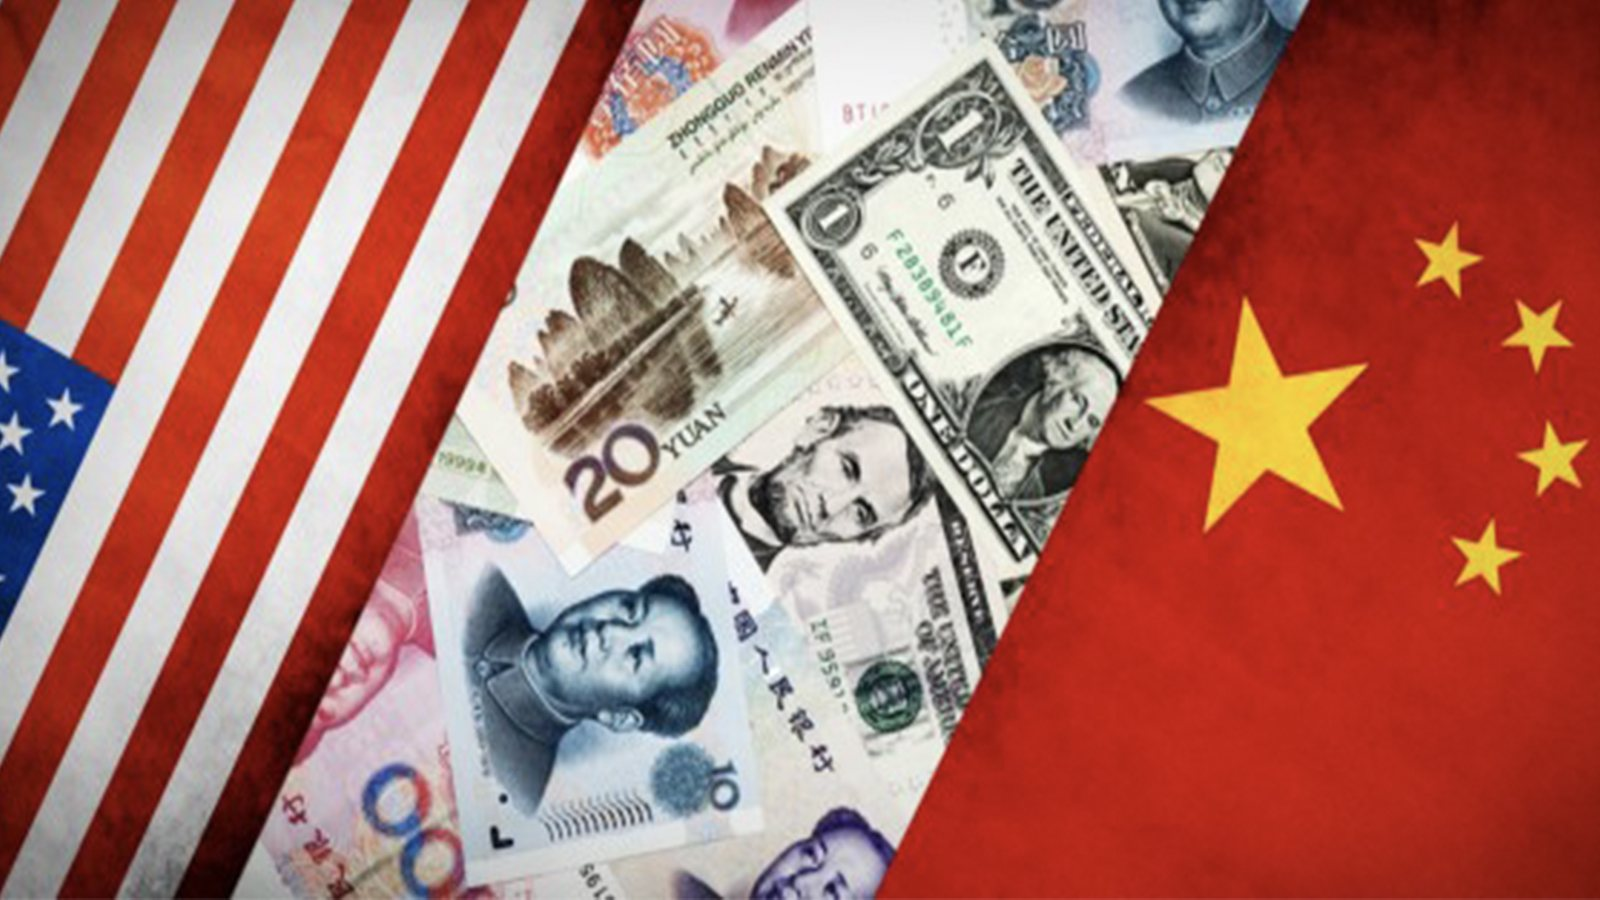 Significant global damage from US-China trade war